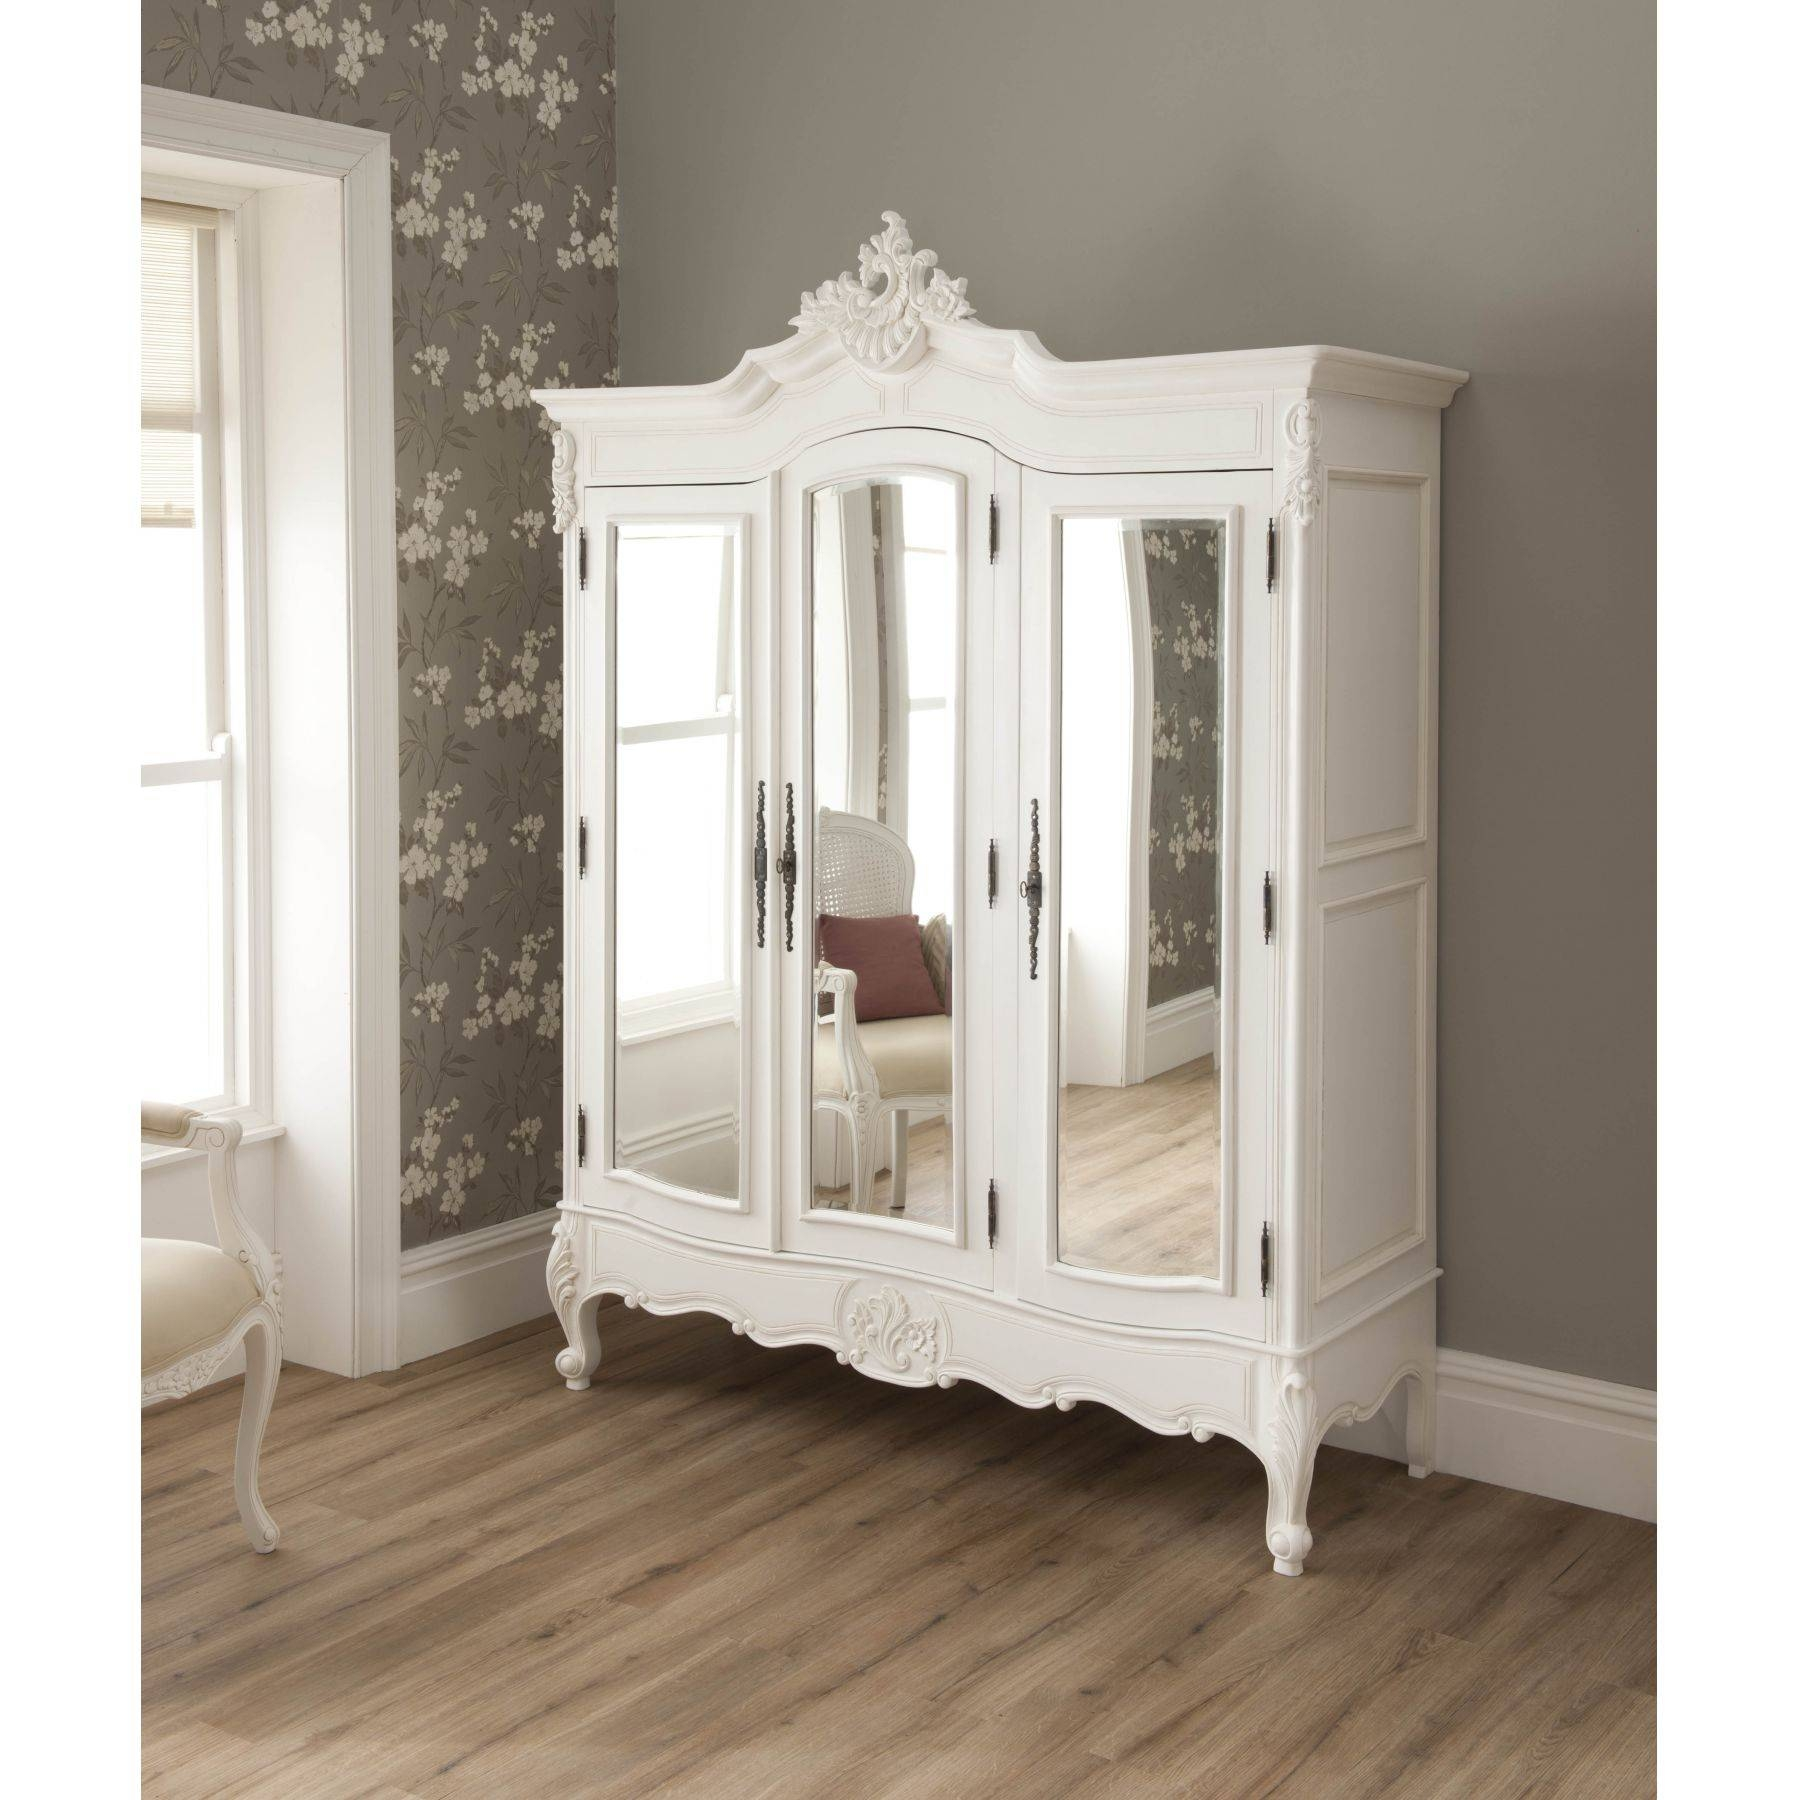 Popular Photo of Shabby Chic Wardrobes For Sale